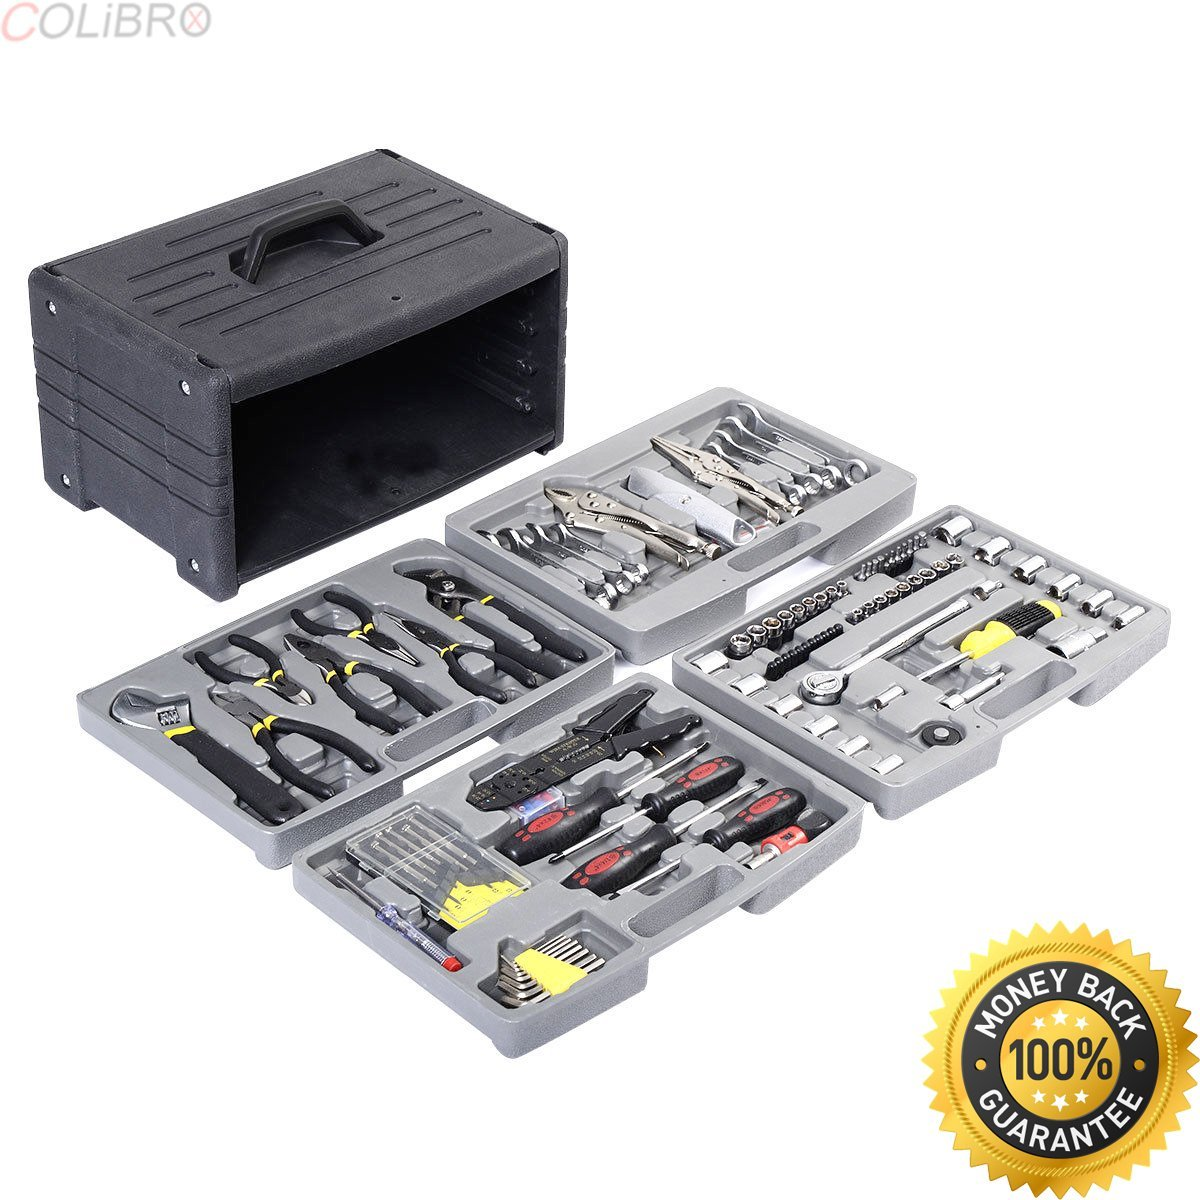 COLIBROX--New 99 PCS Garage Tool Mechanic's Tool Kit Set Shop Vehicle Repair four floors. master mechanic tool sets. craftsman master mechanic tool set. master mechanic socket set.